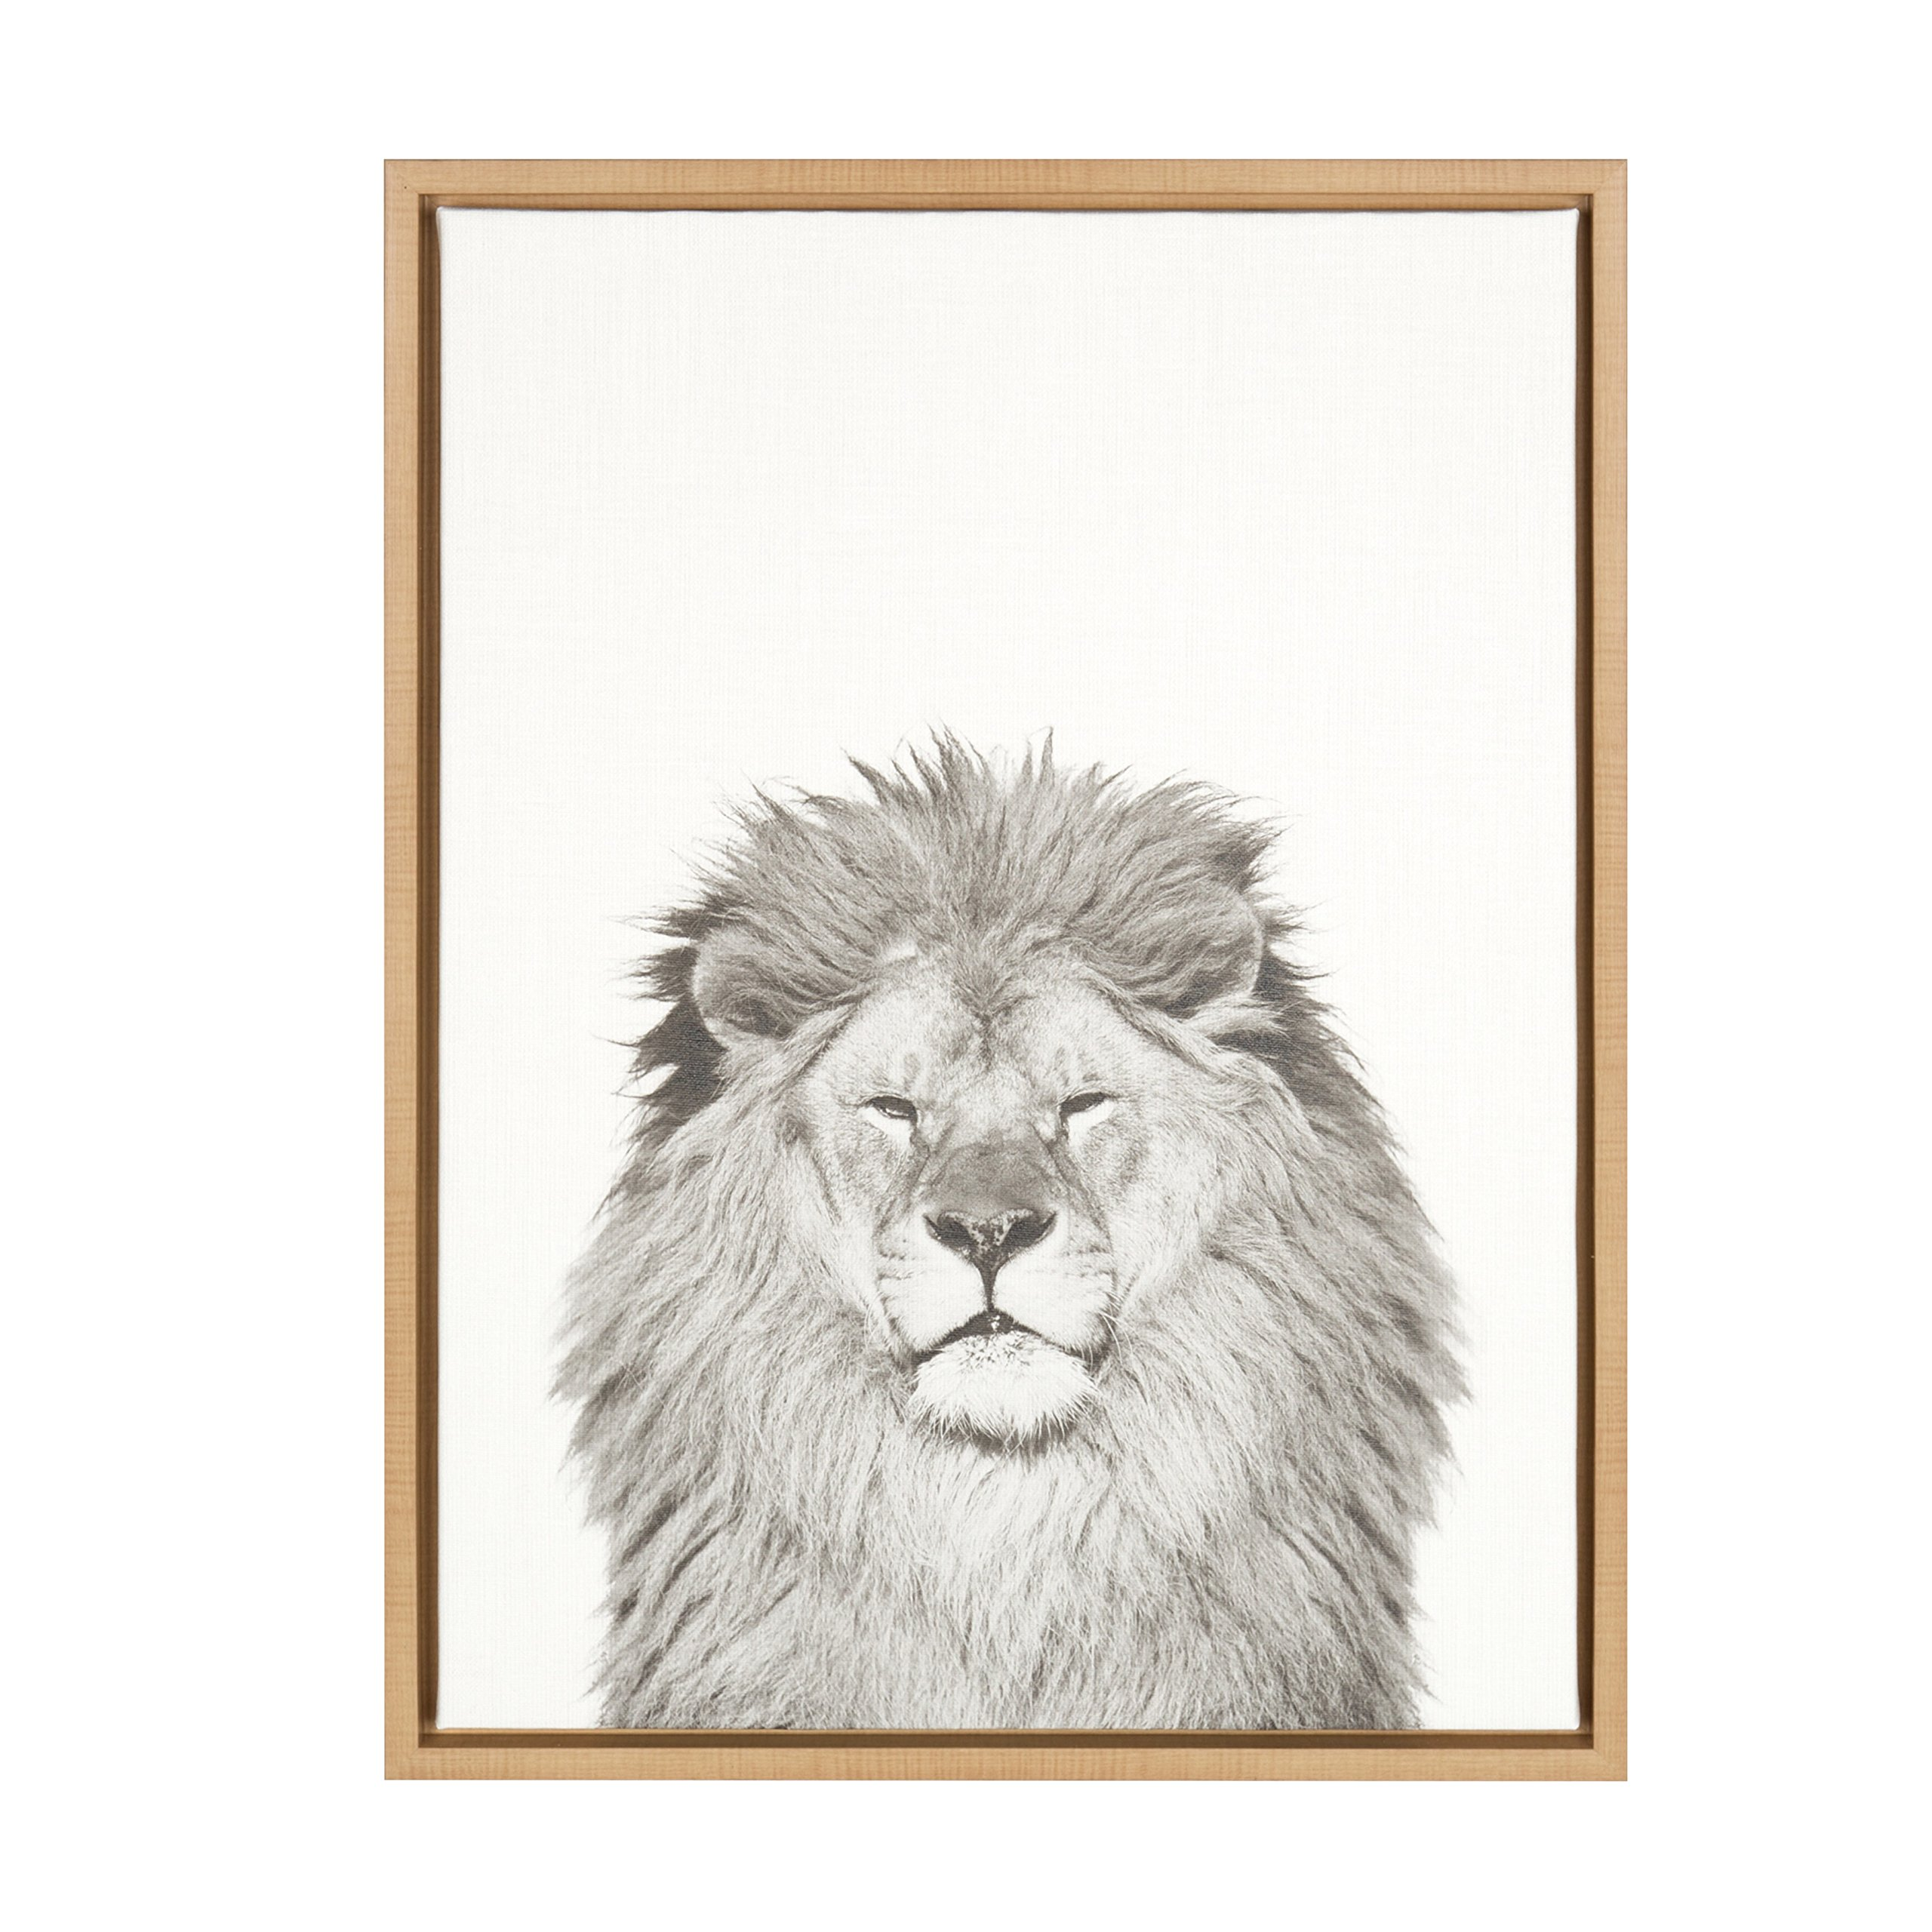 Kate and Laurel - Sylvie Lion Animal Print Black and White Portrait Framed Canvas Wall Art by Simon Te Tai, Natural 18x24